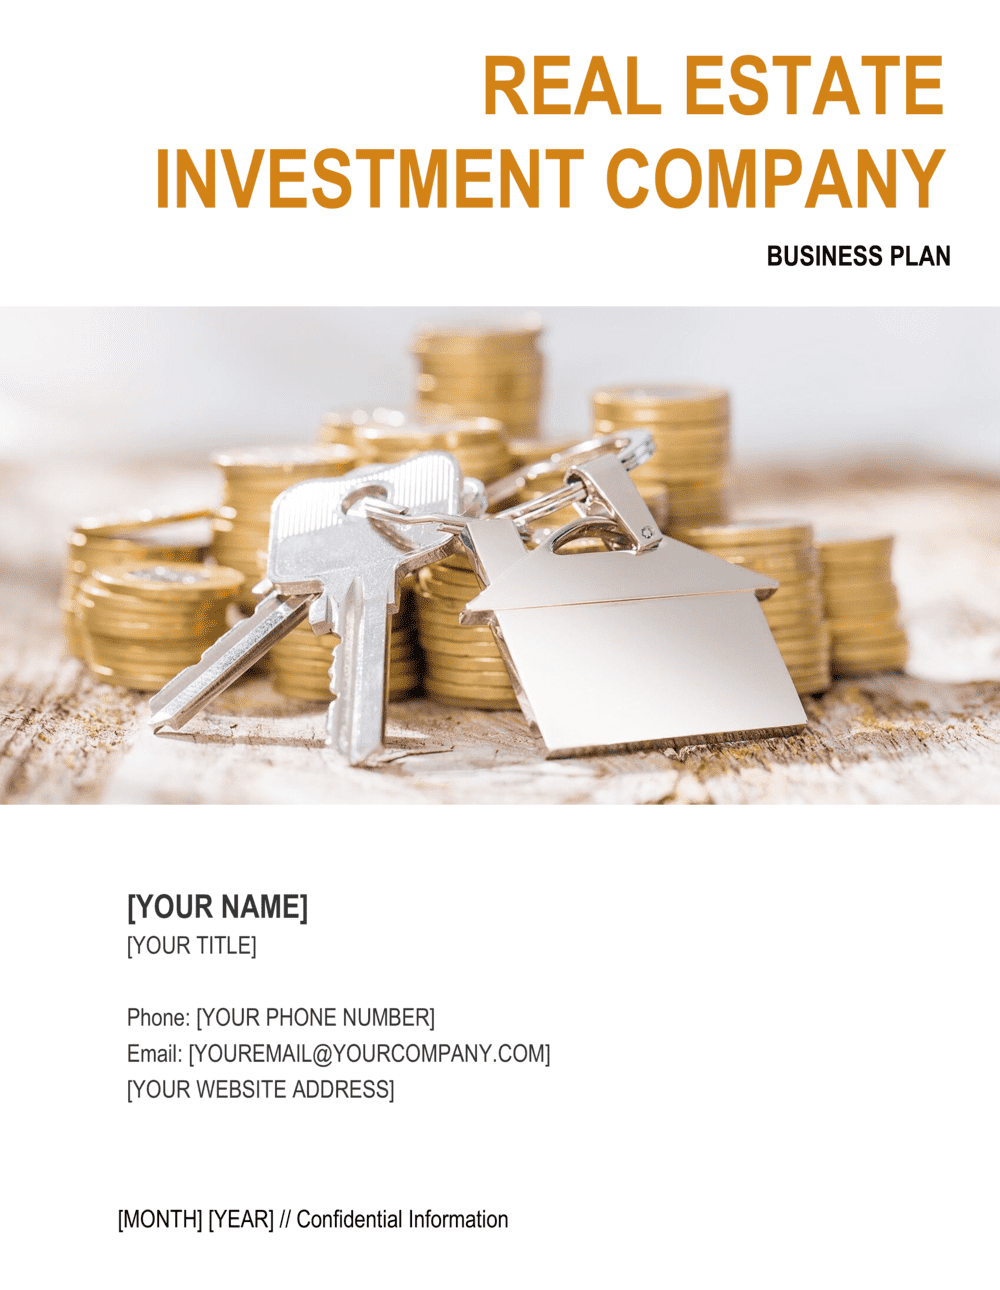 Business-in-a-Box's Real Estate Investment Company Business Plan Template